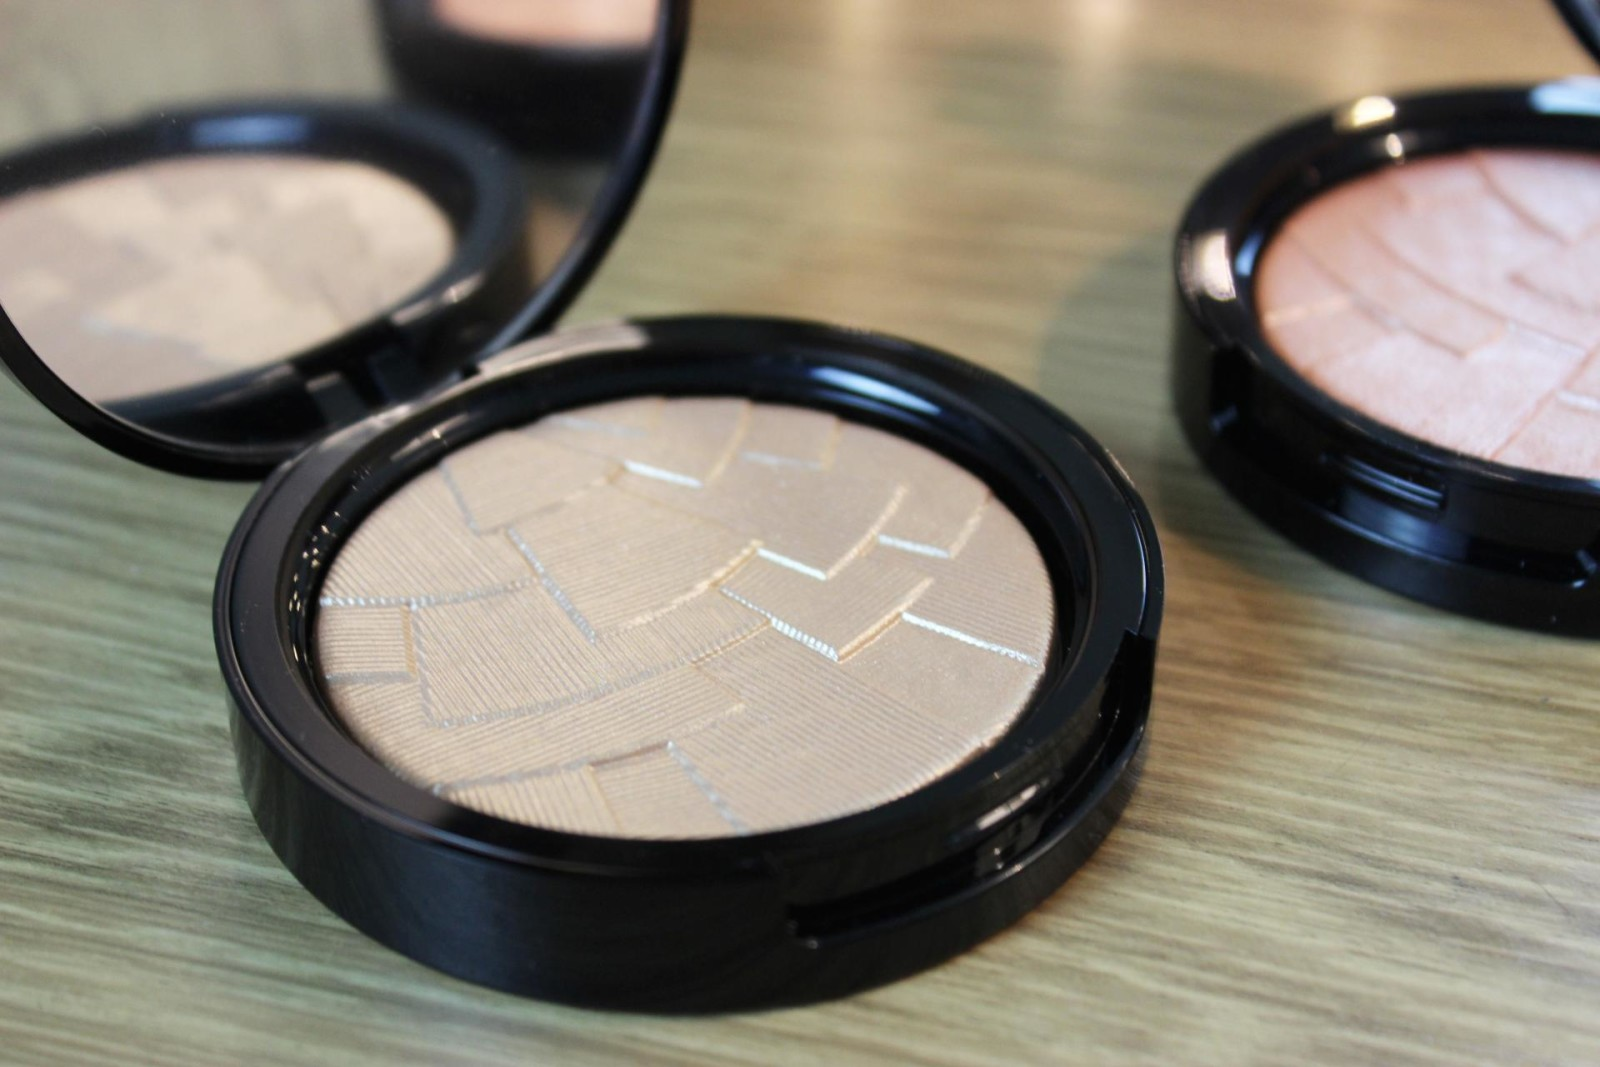 Anastasia Beverly Hills Illuminators So Hollywood & Peach Nectar